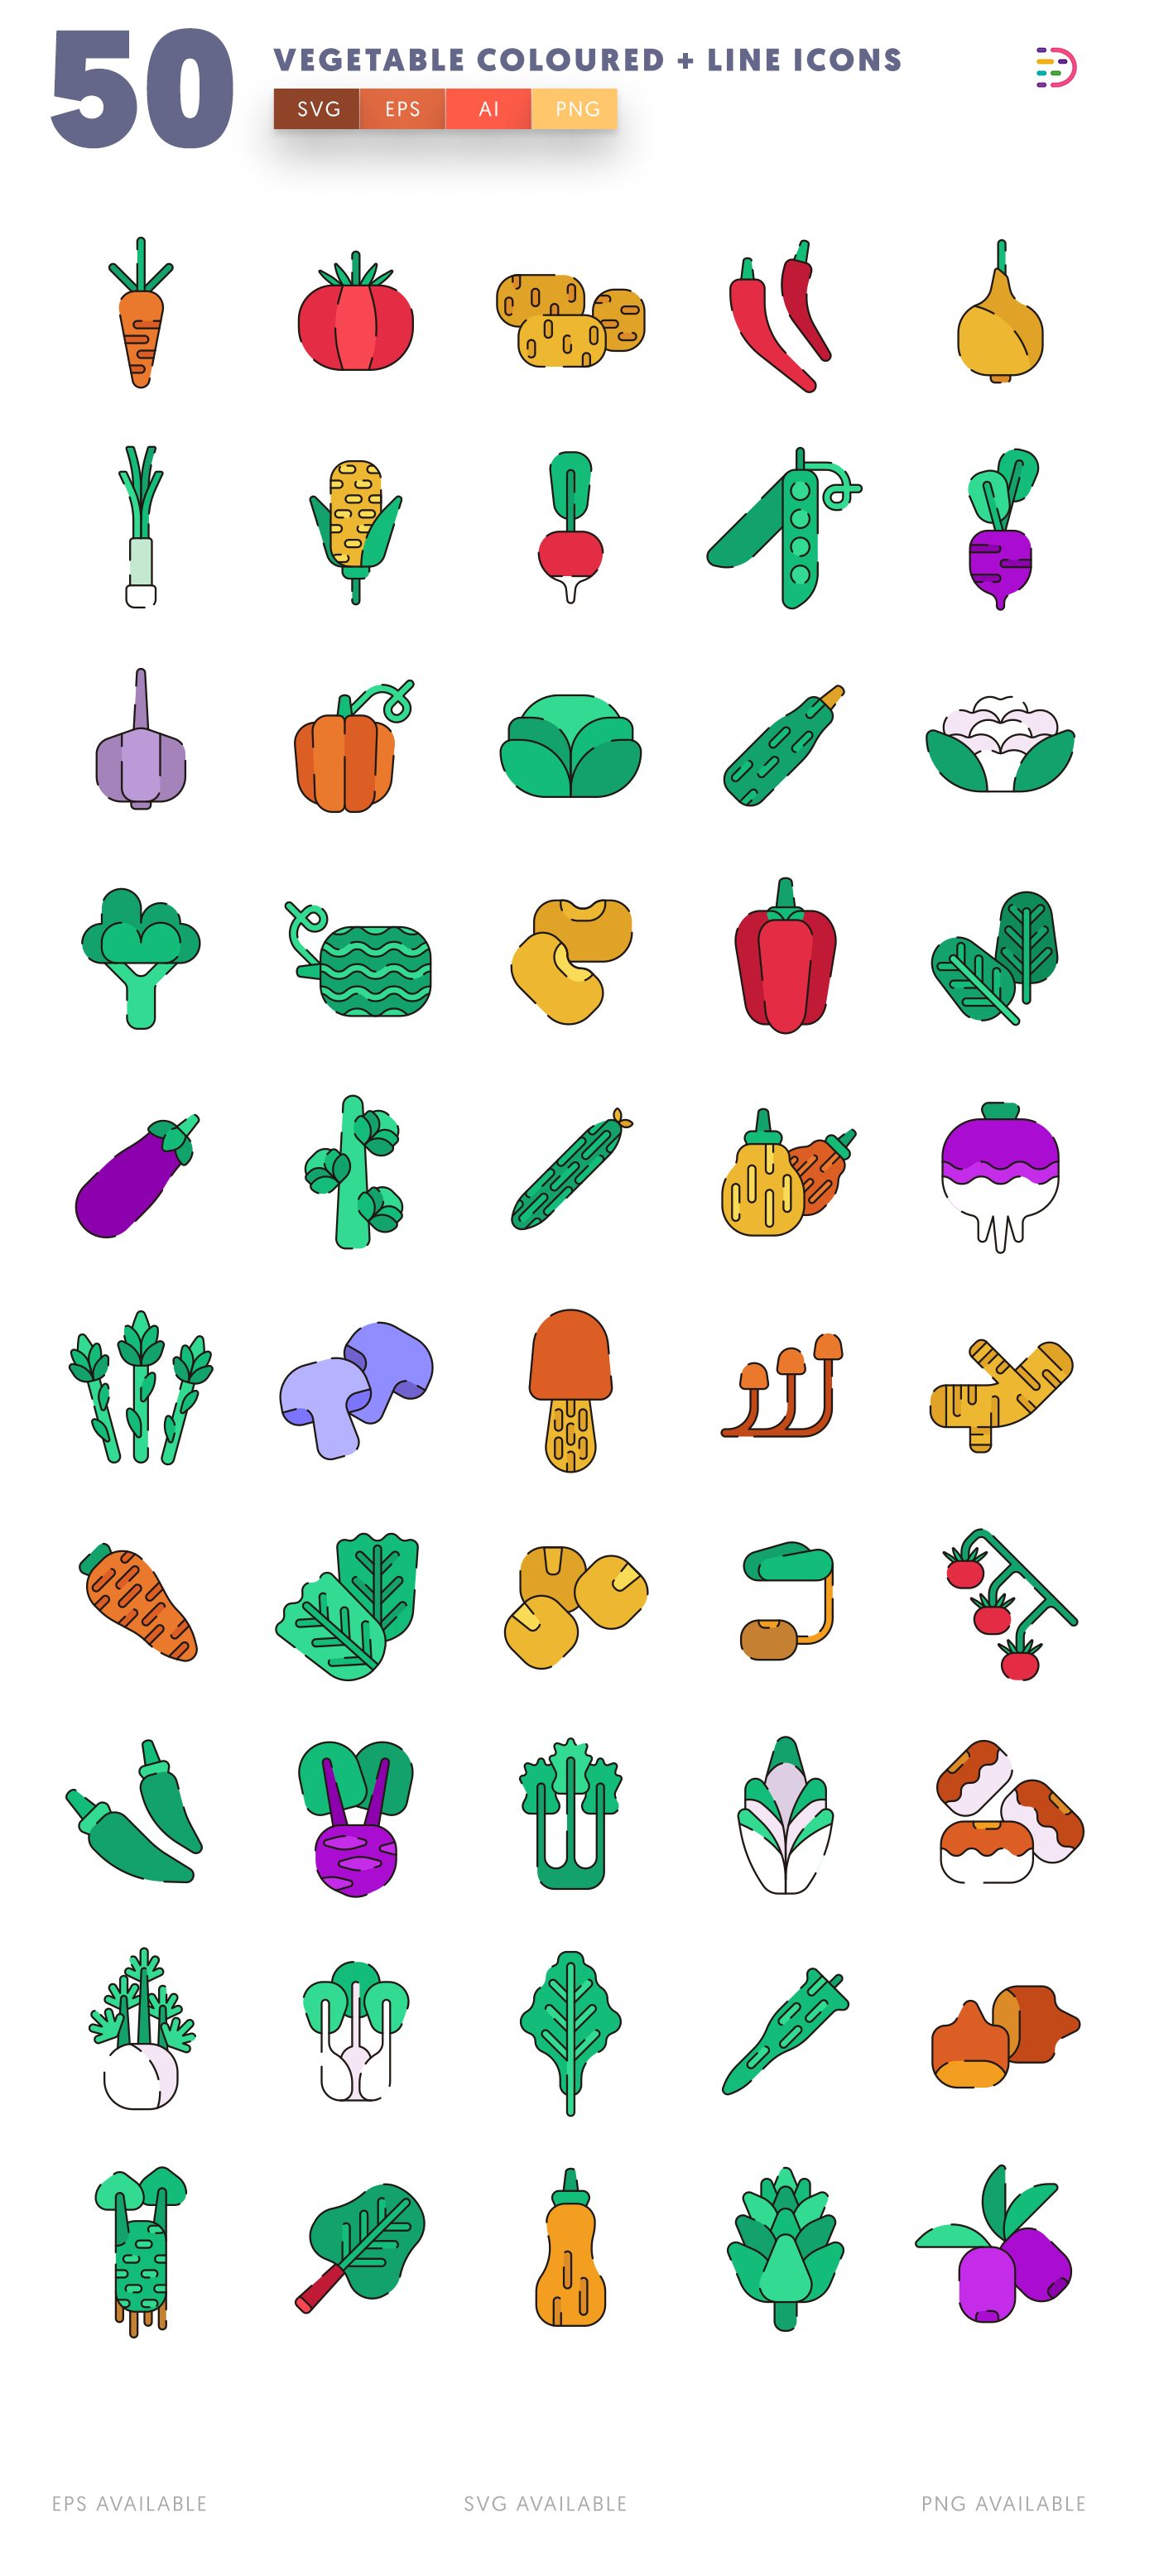 Vegetable Coloured + Lines icon pack